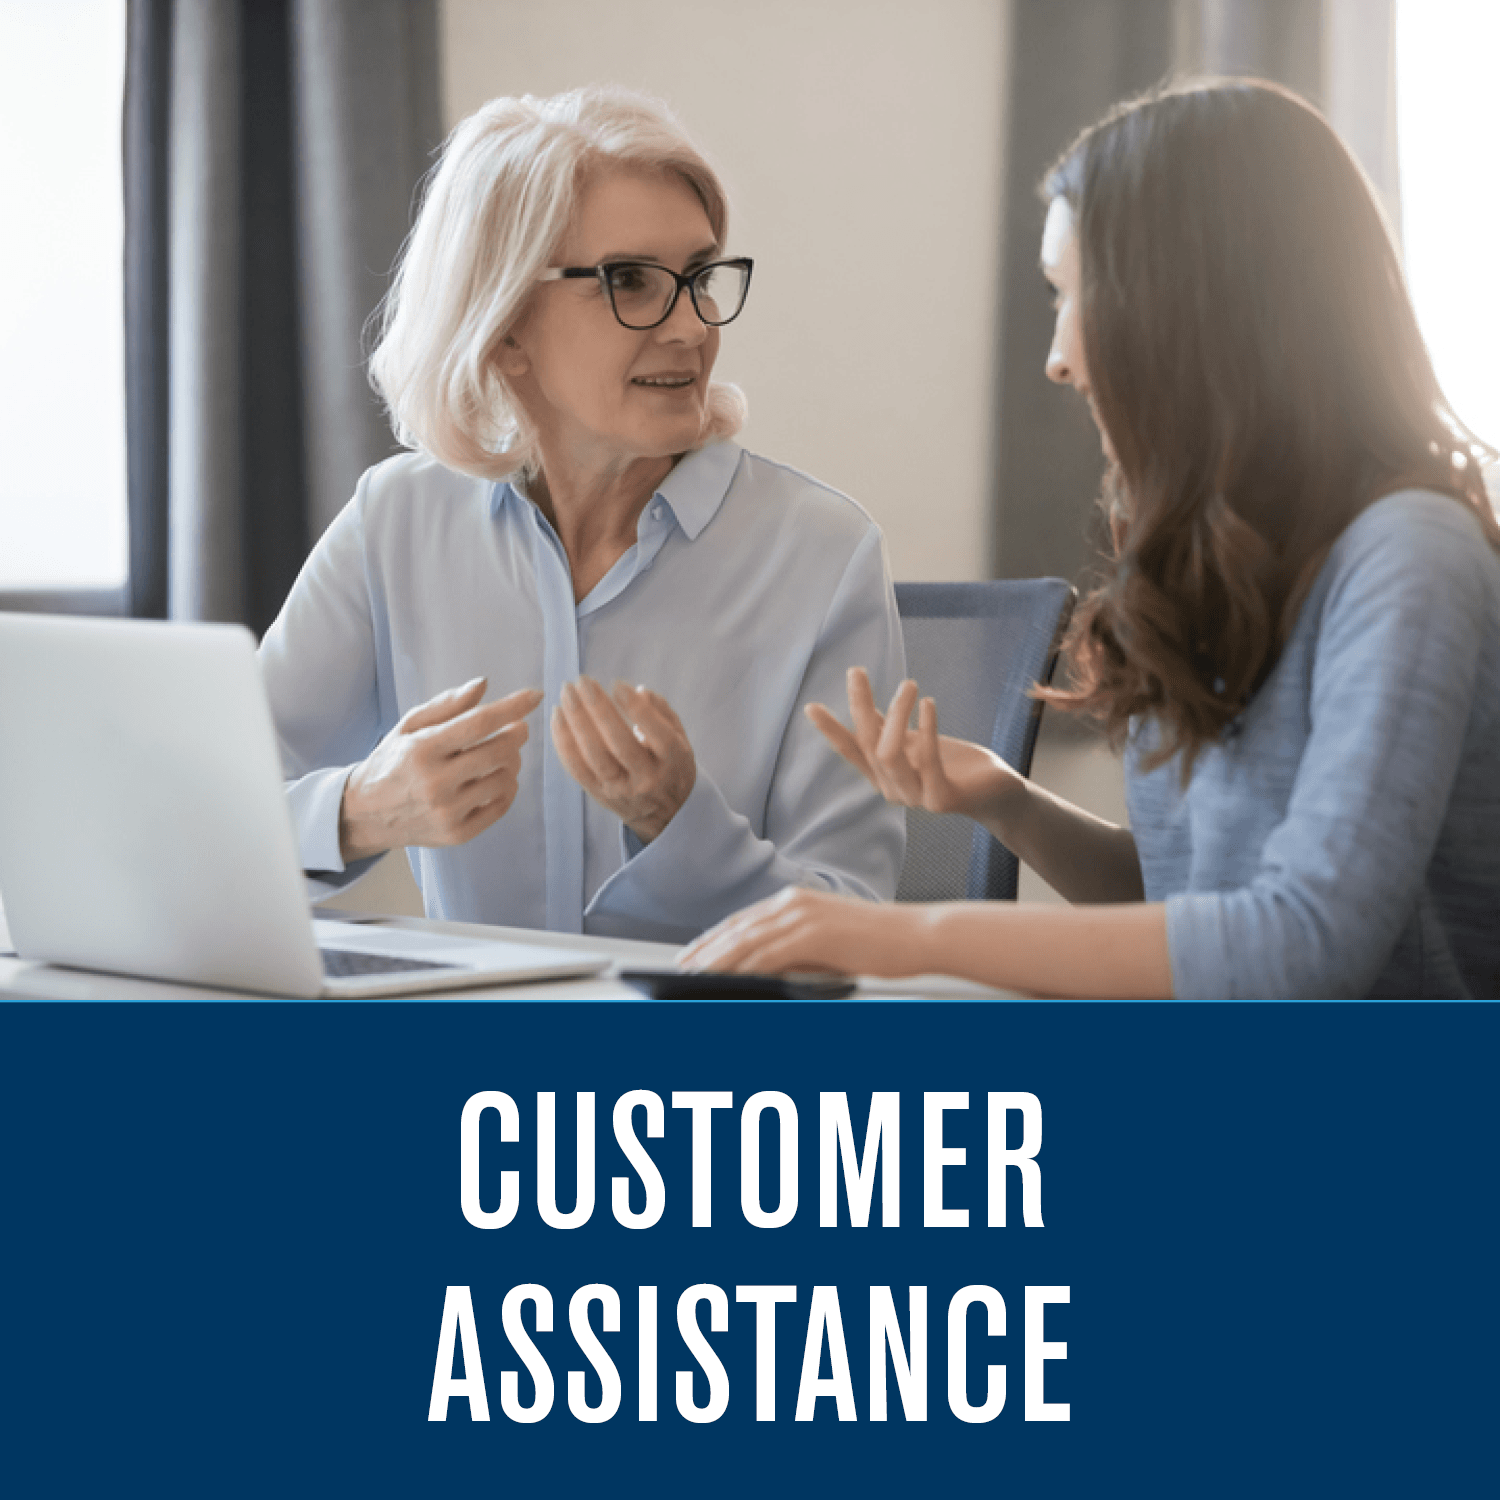 Customer Assistance